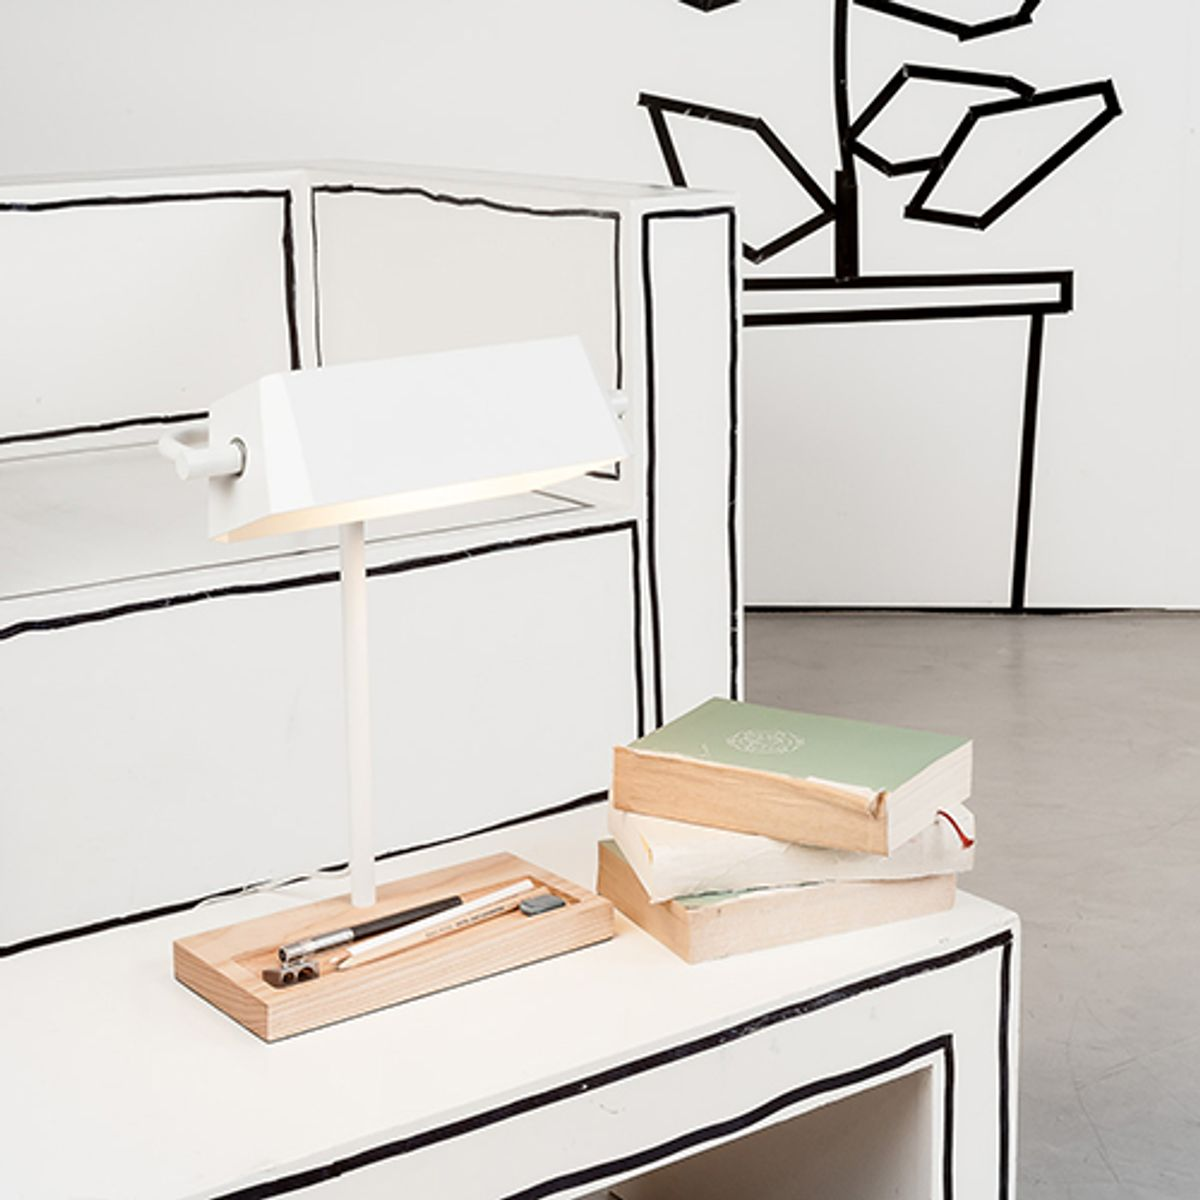 lampe de bureau en acier et bois cambridge it s about romi decoclico. Black Bedroom Furniture Sets. Home Design Ideas